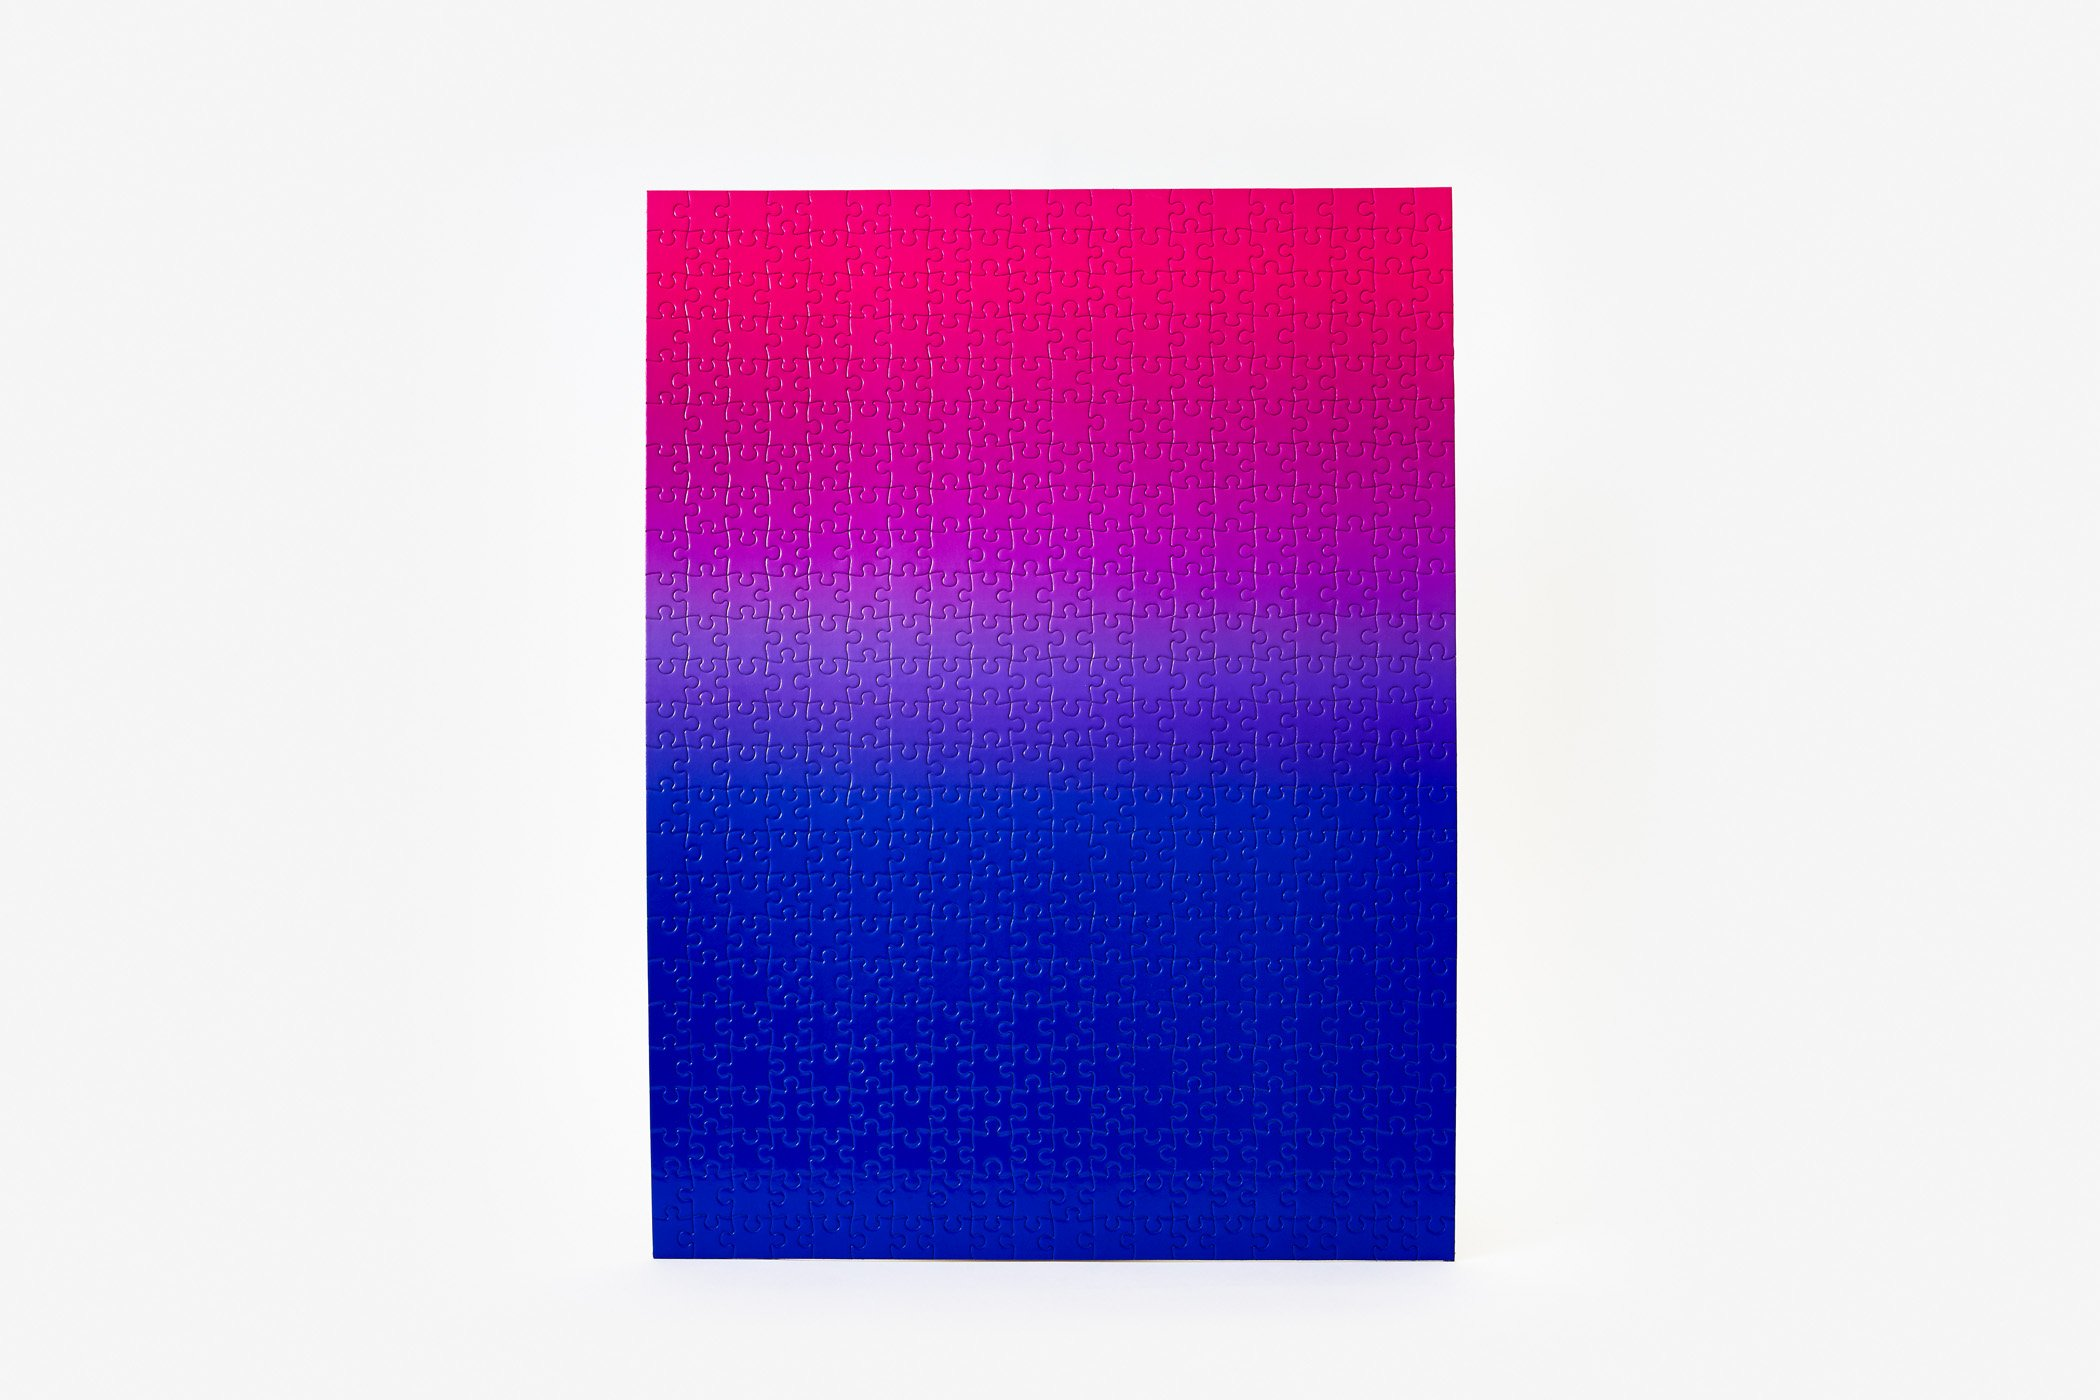 Gradient Puzzle (blue/pink) Abstract Jigsaw Puzzle